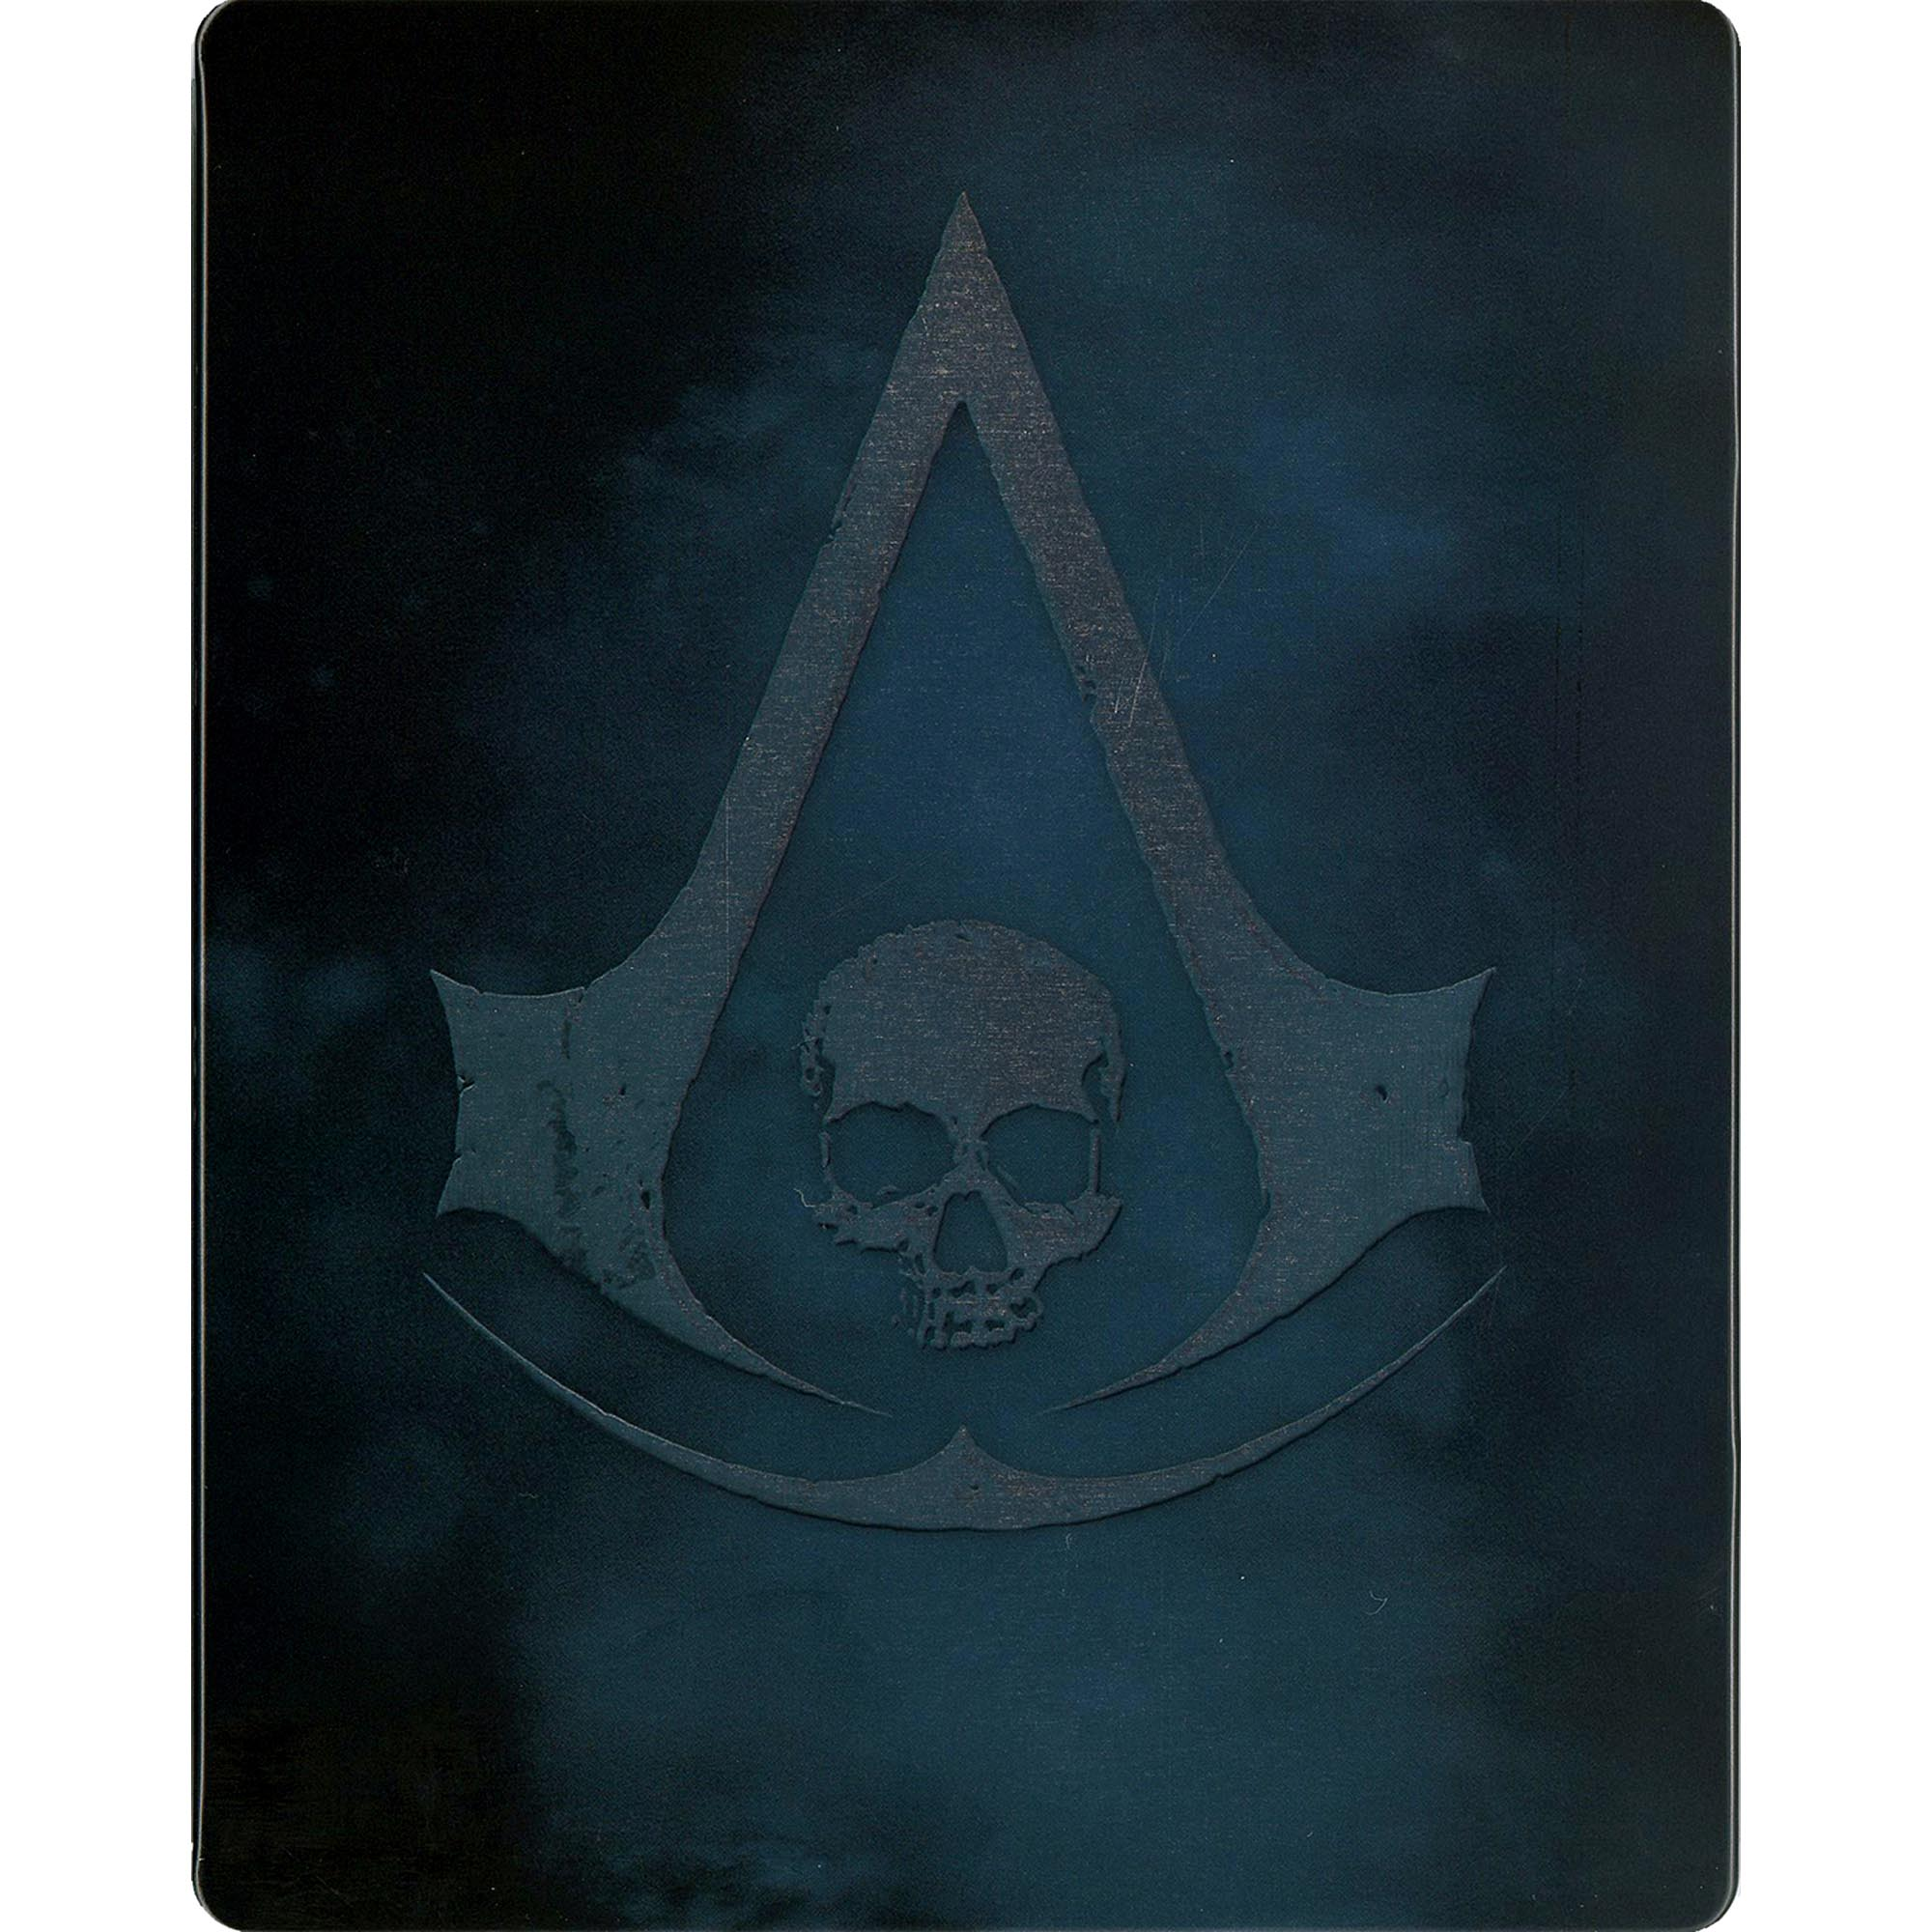 Assassin's Creed IV Black Flag Limited Edition XBOX 360